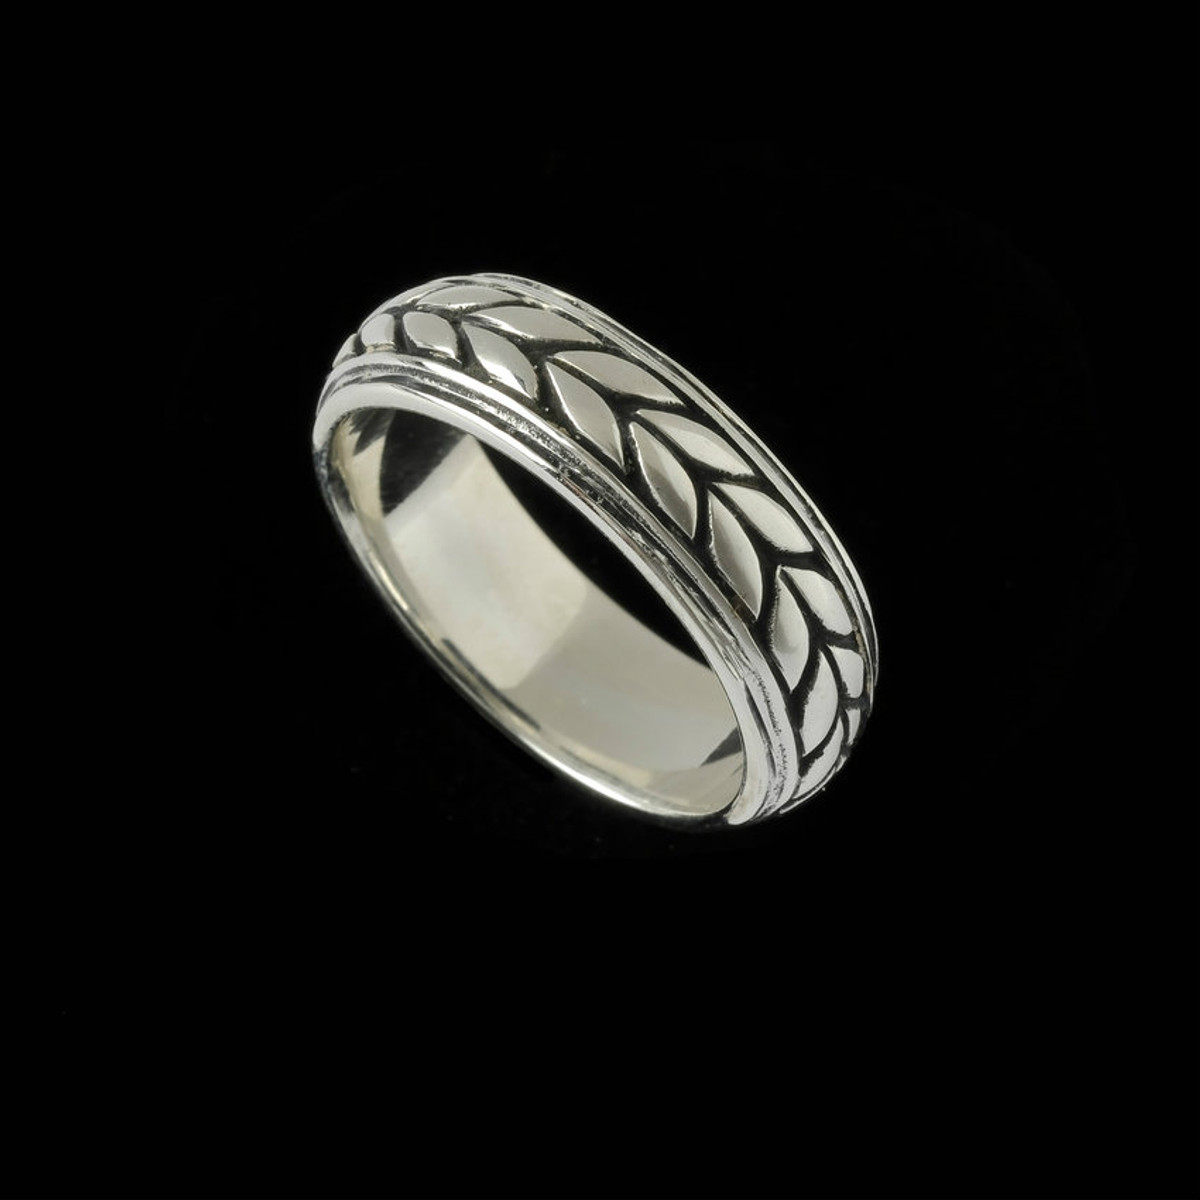 handmade sterling silver leaf wedding ring band engraved by bowman originals - Leaf Wedding Ring